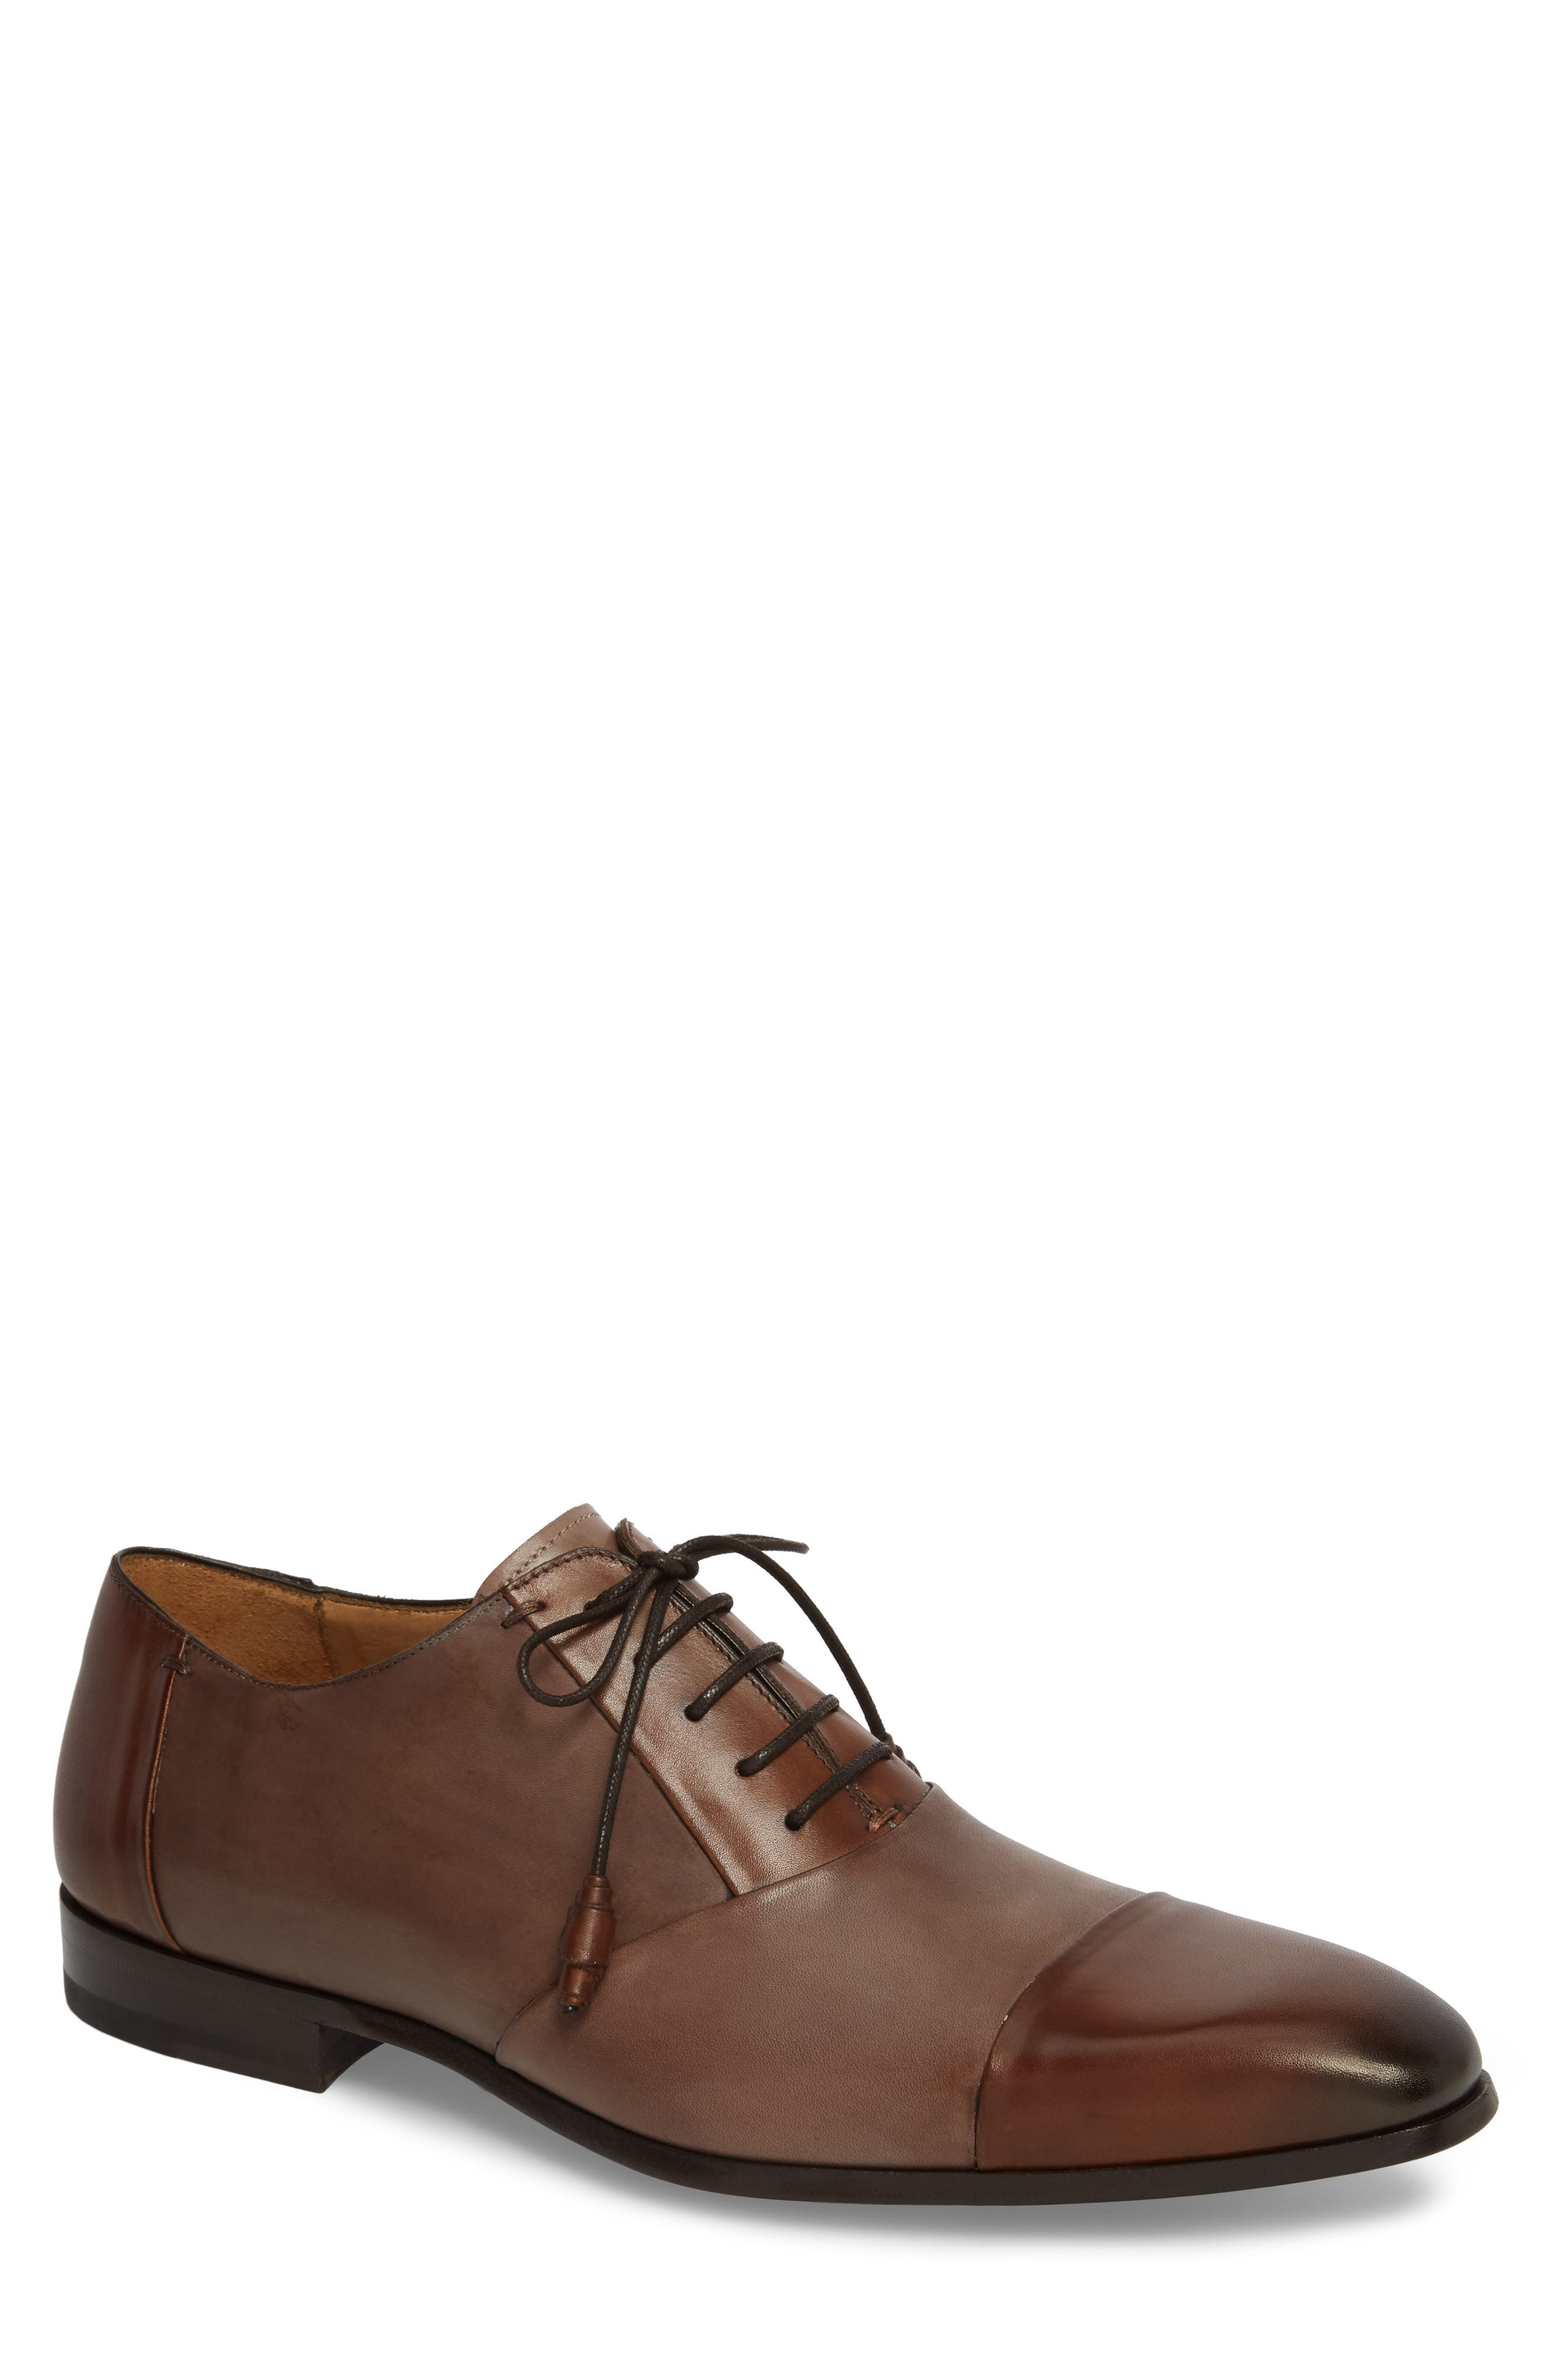 Julius Spectator Oxford,                             Main thumbnail 1, color,                             Cognac/ Taupe Leather